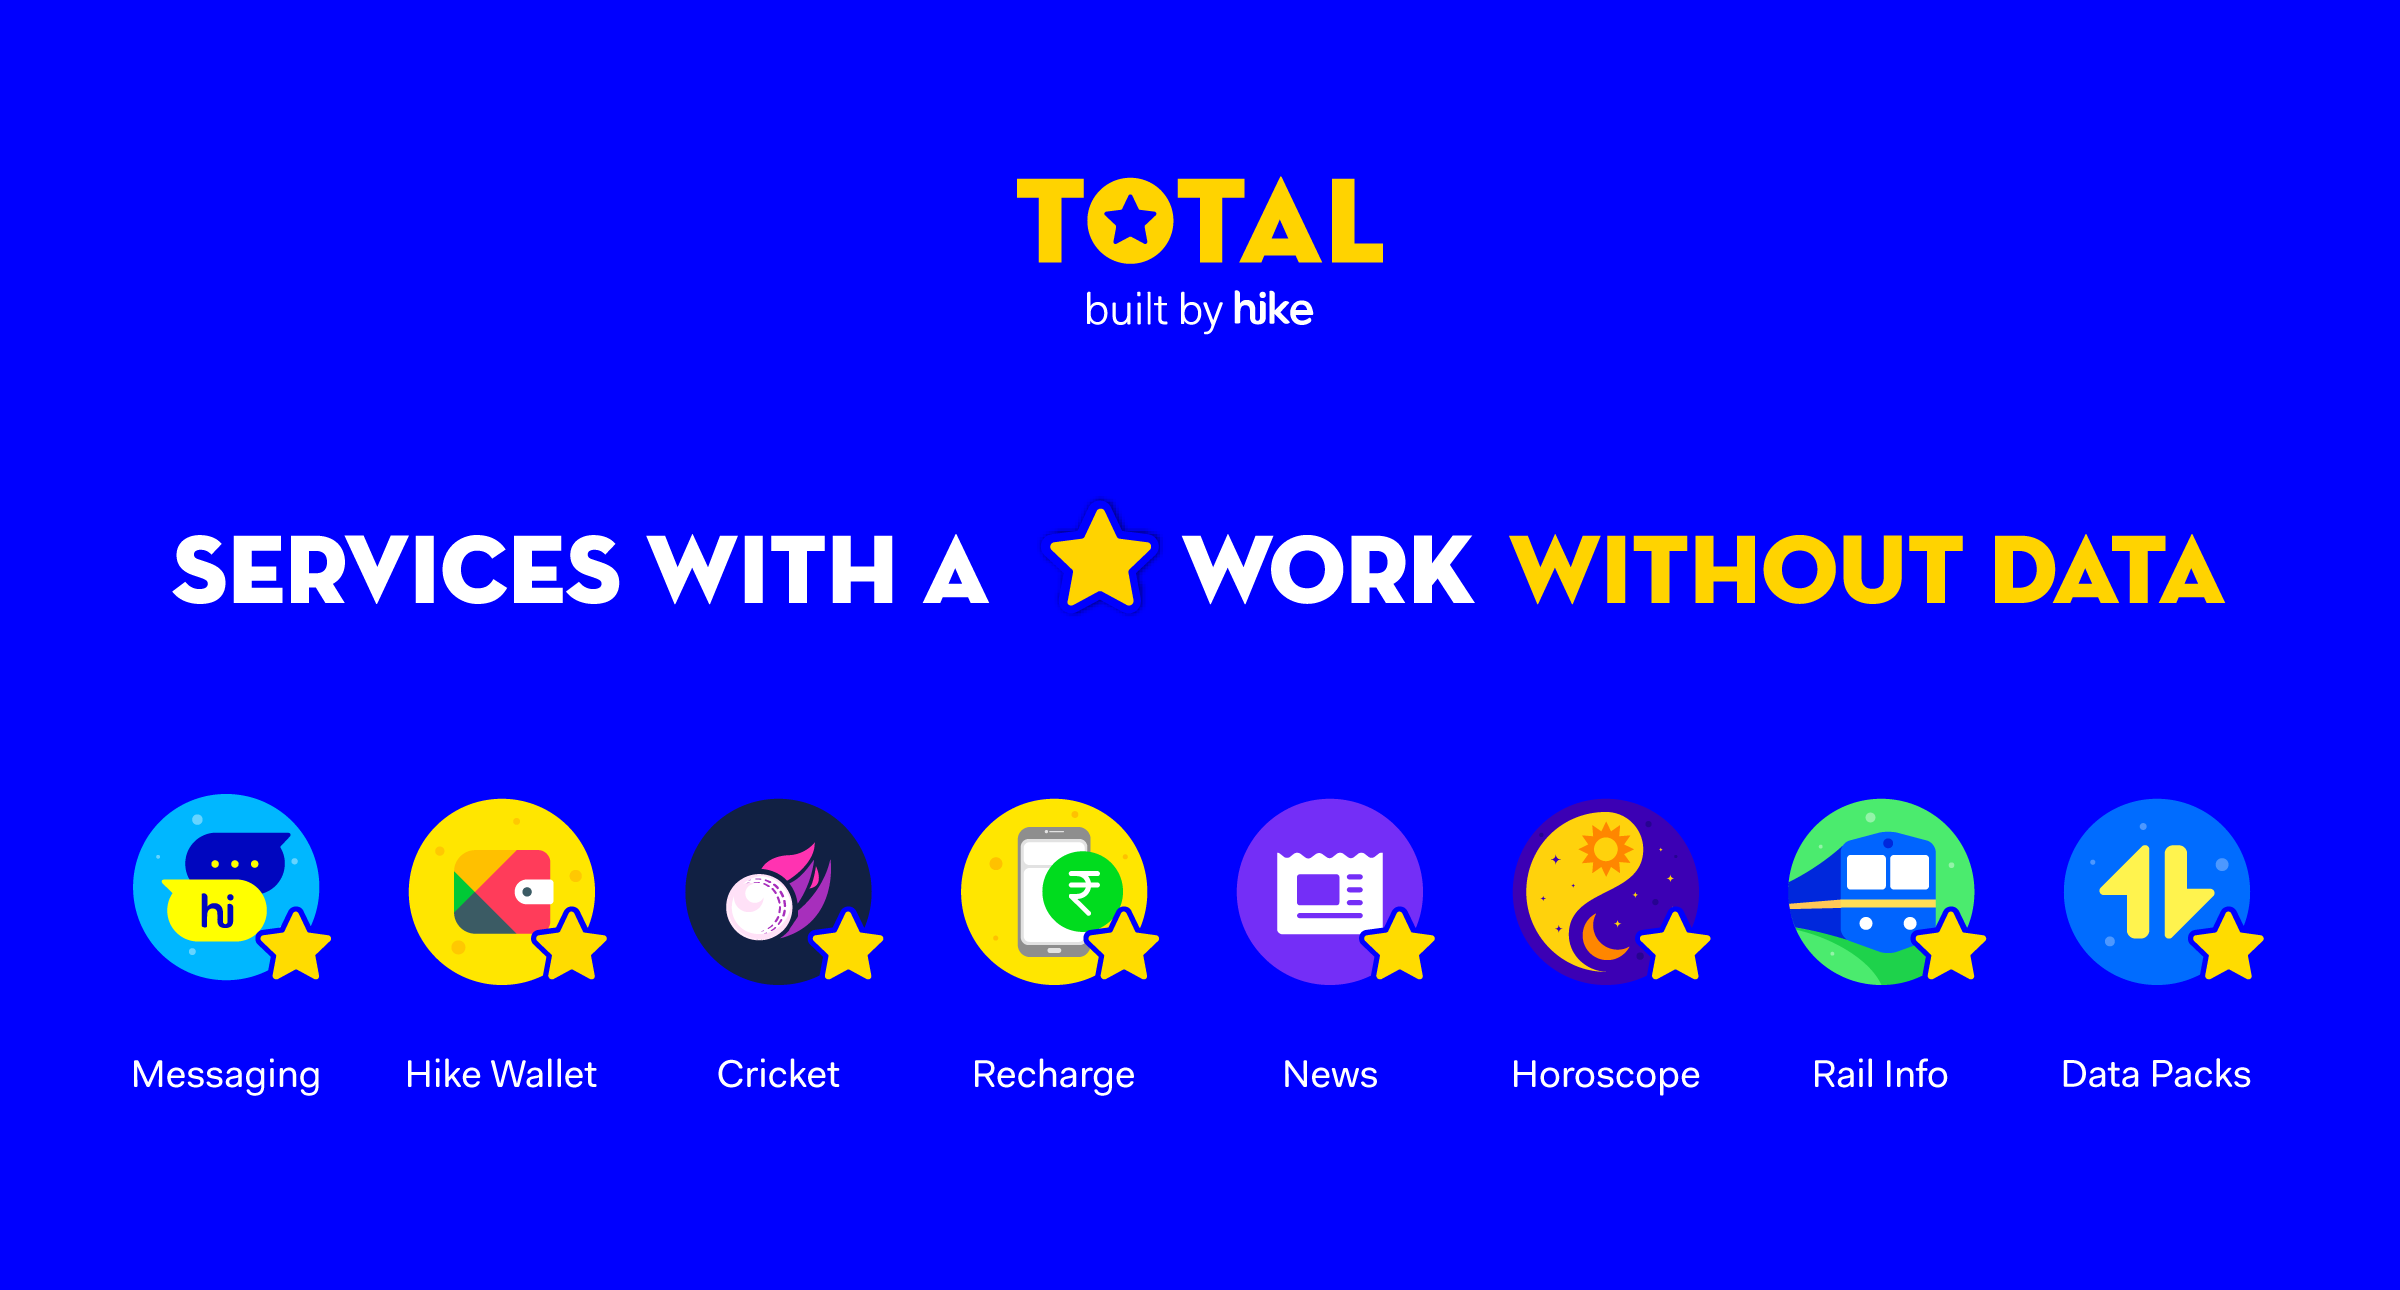 Services_Total, built by hike